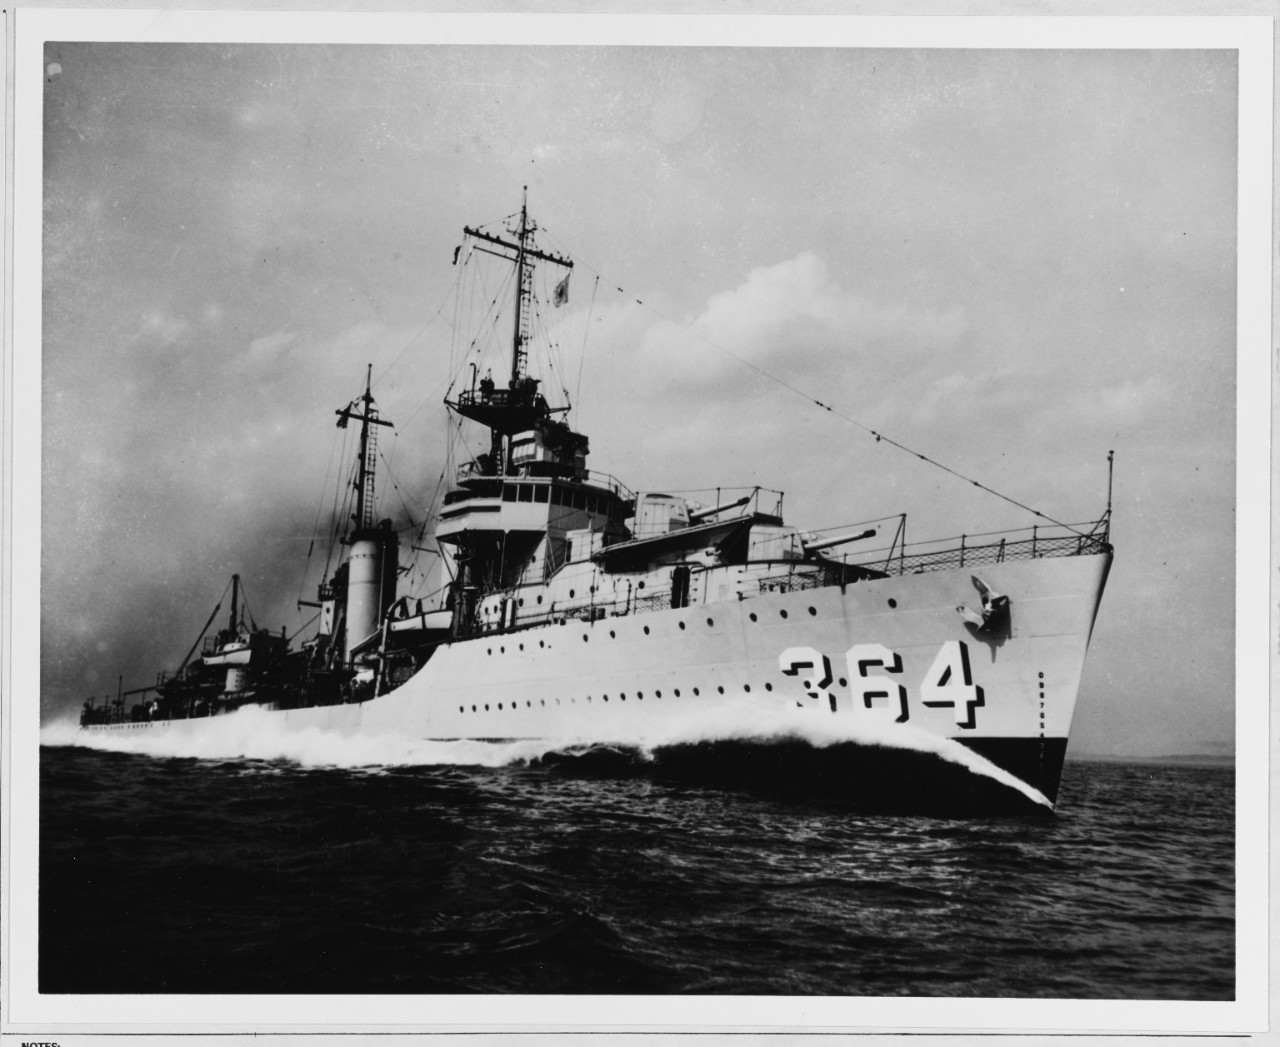 The newly commissioned destroyer conducting trials off the eastern seaboard of the U.S., circa 1936. (Naval History and Heritage Command Photograph NH 60643)